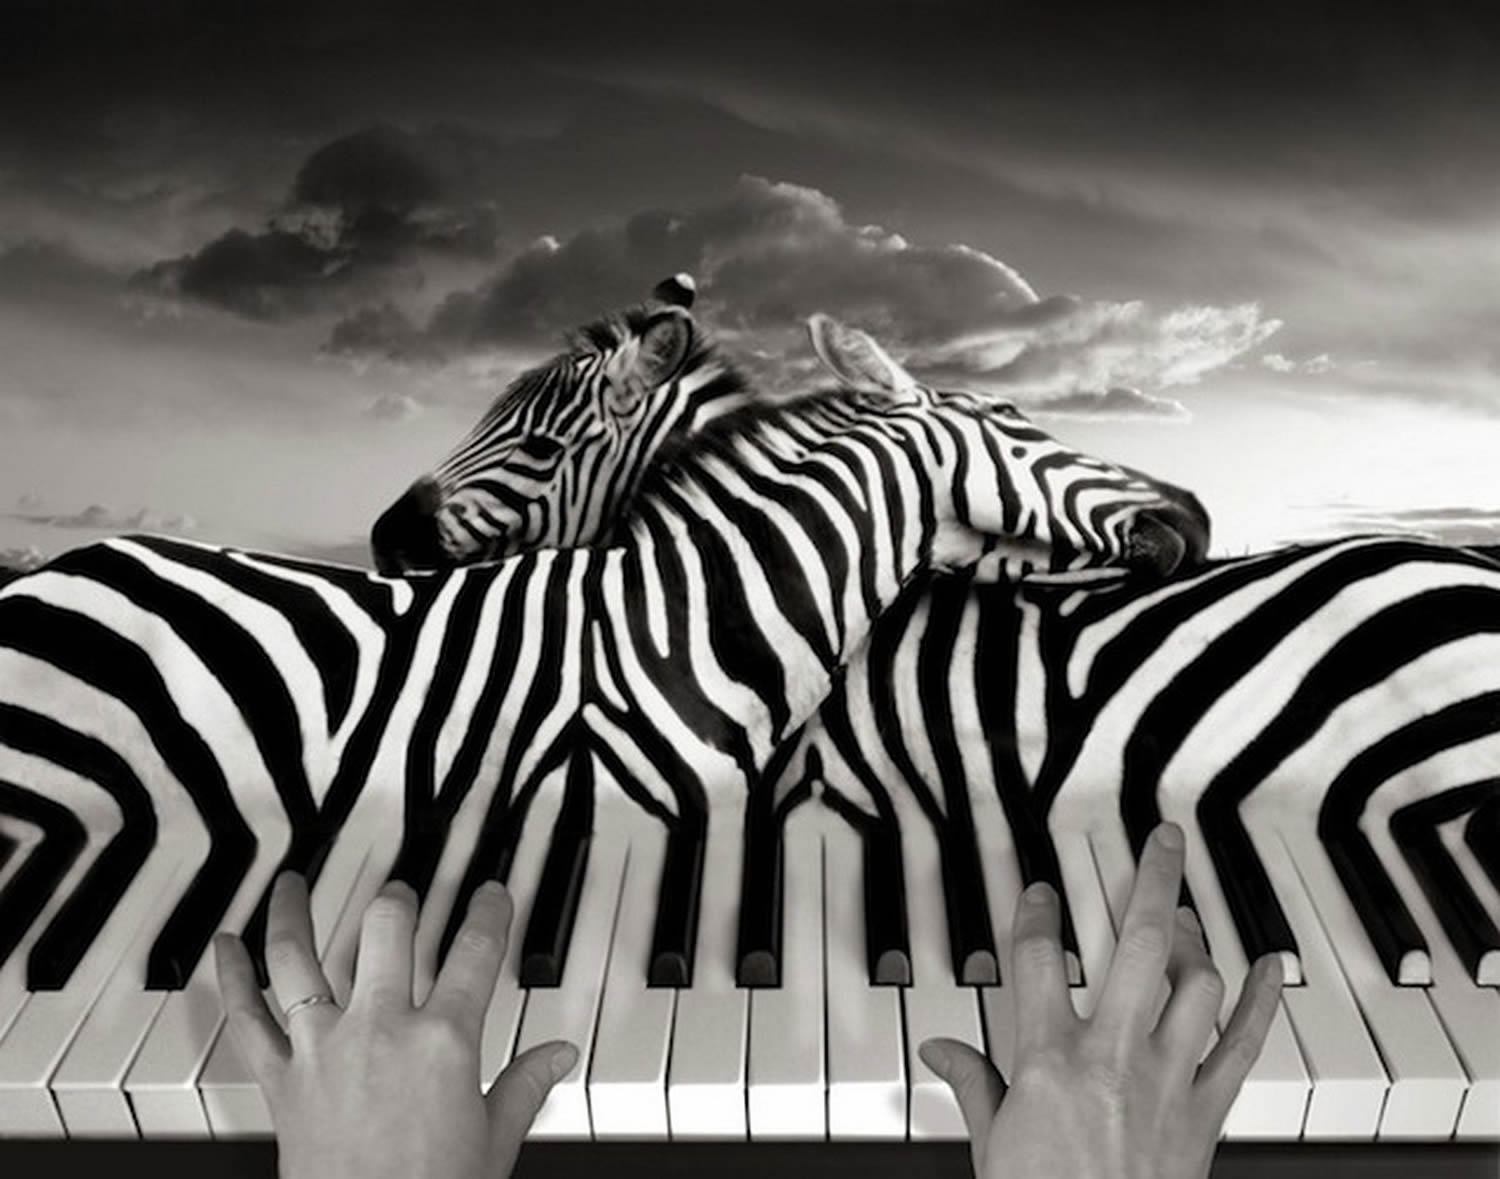 piano and zebra surreal photo by thomas barbey